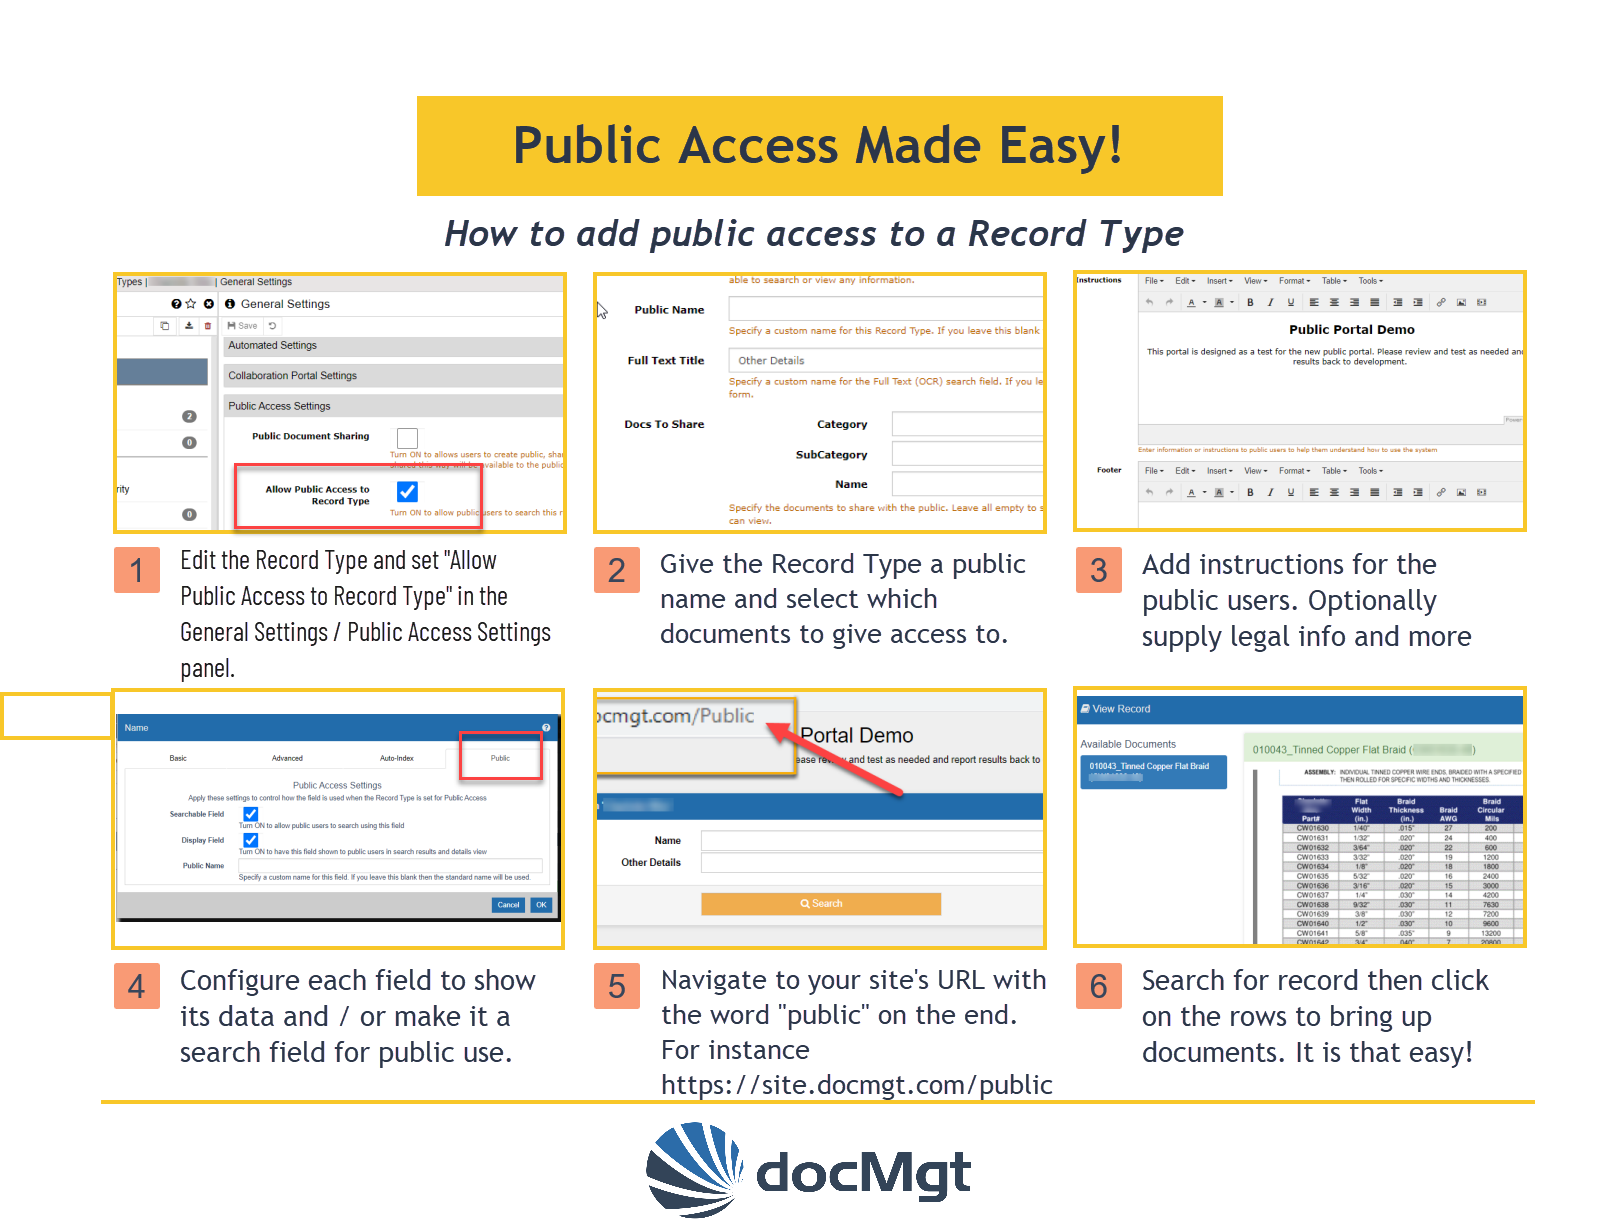 Public Access Made Easy